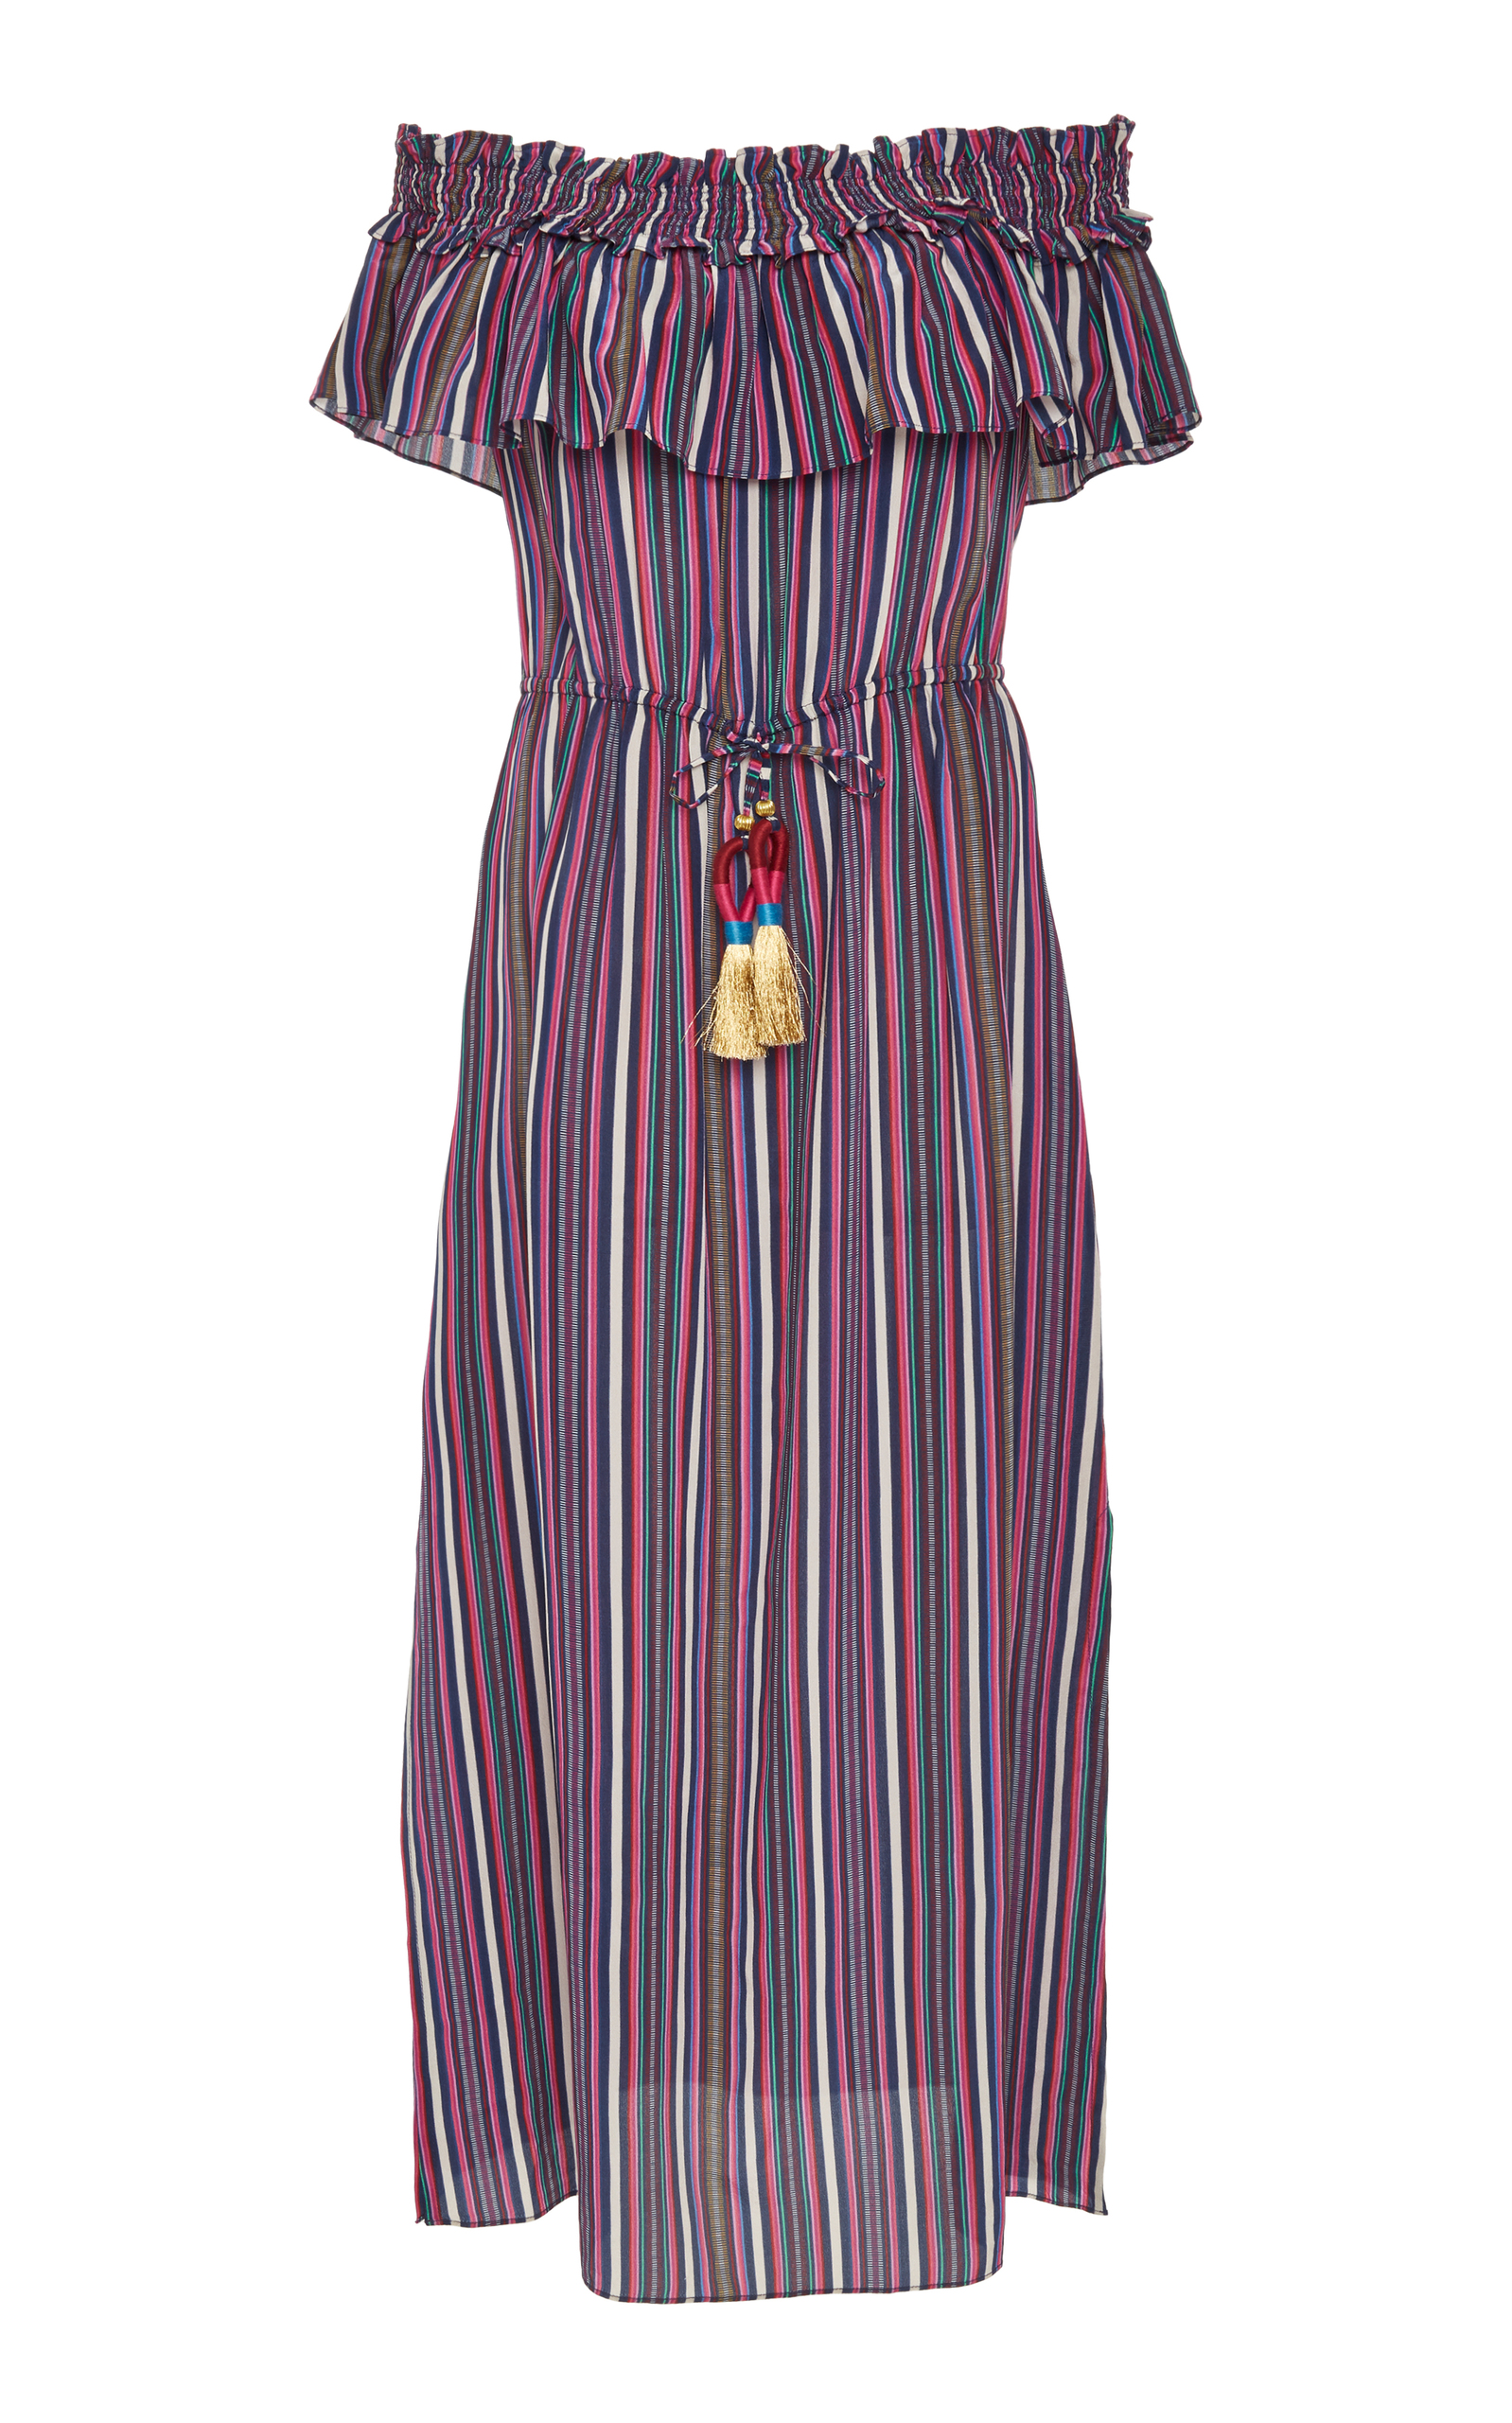 Genuine For Sale Mirella striped dress - Pink & Purple Figue Cheap Online Store Manchester Outlet Nicekicks Discount Low Price Y59wKs